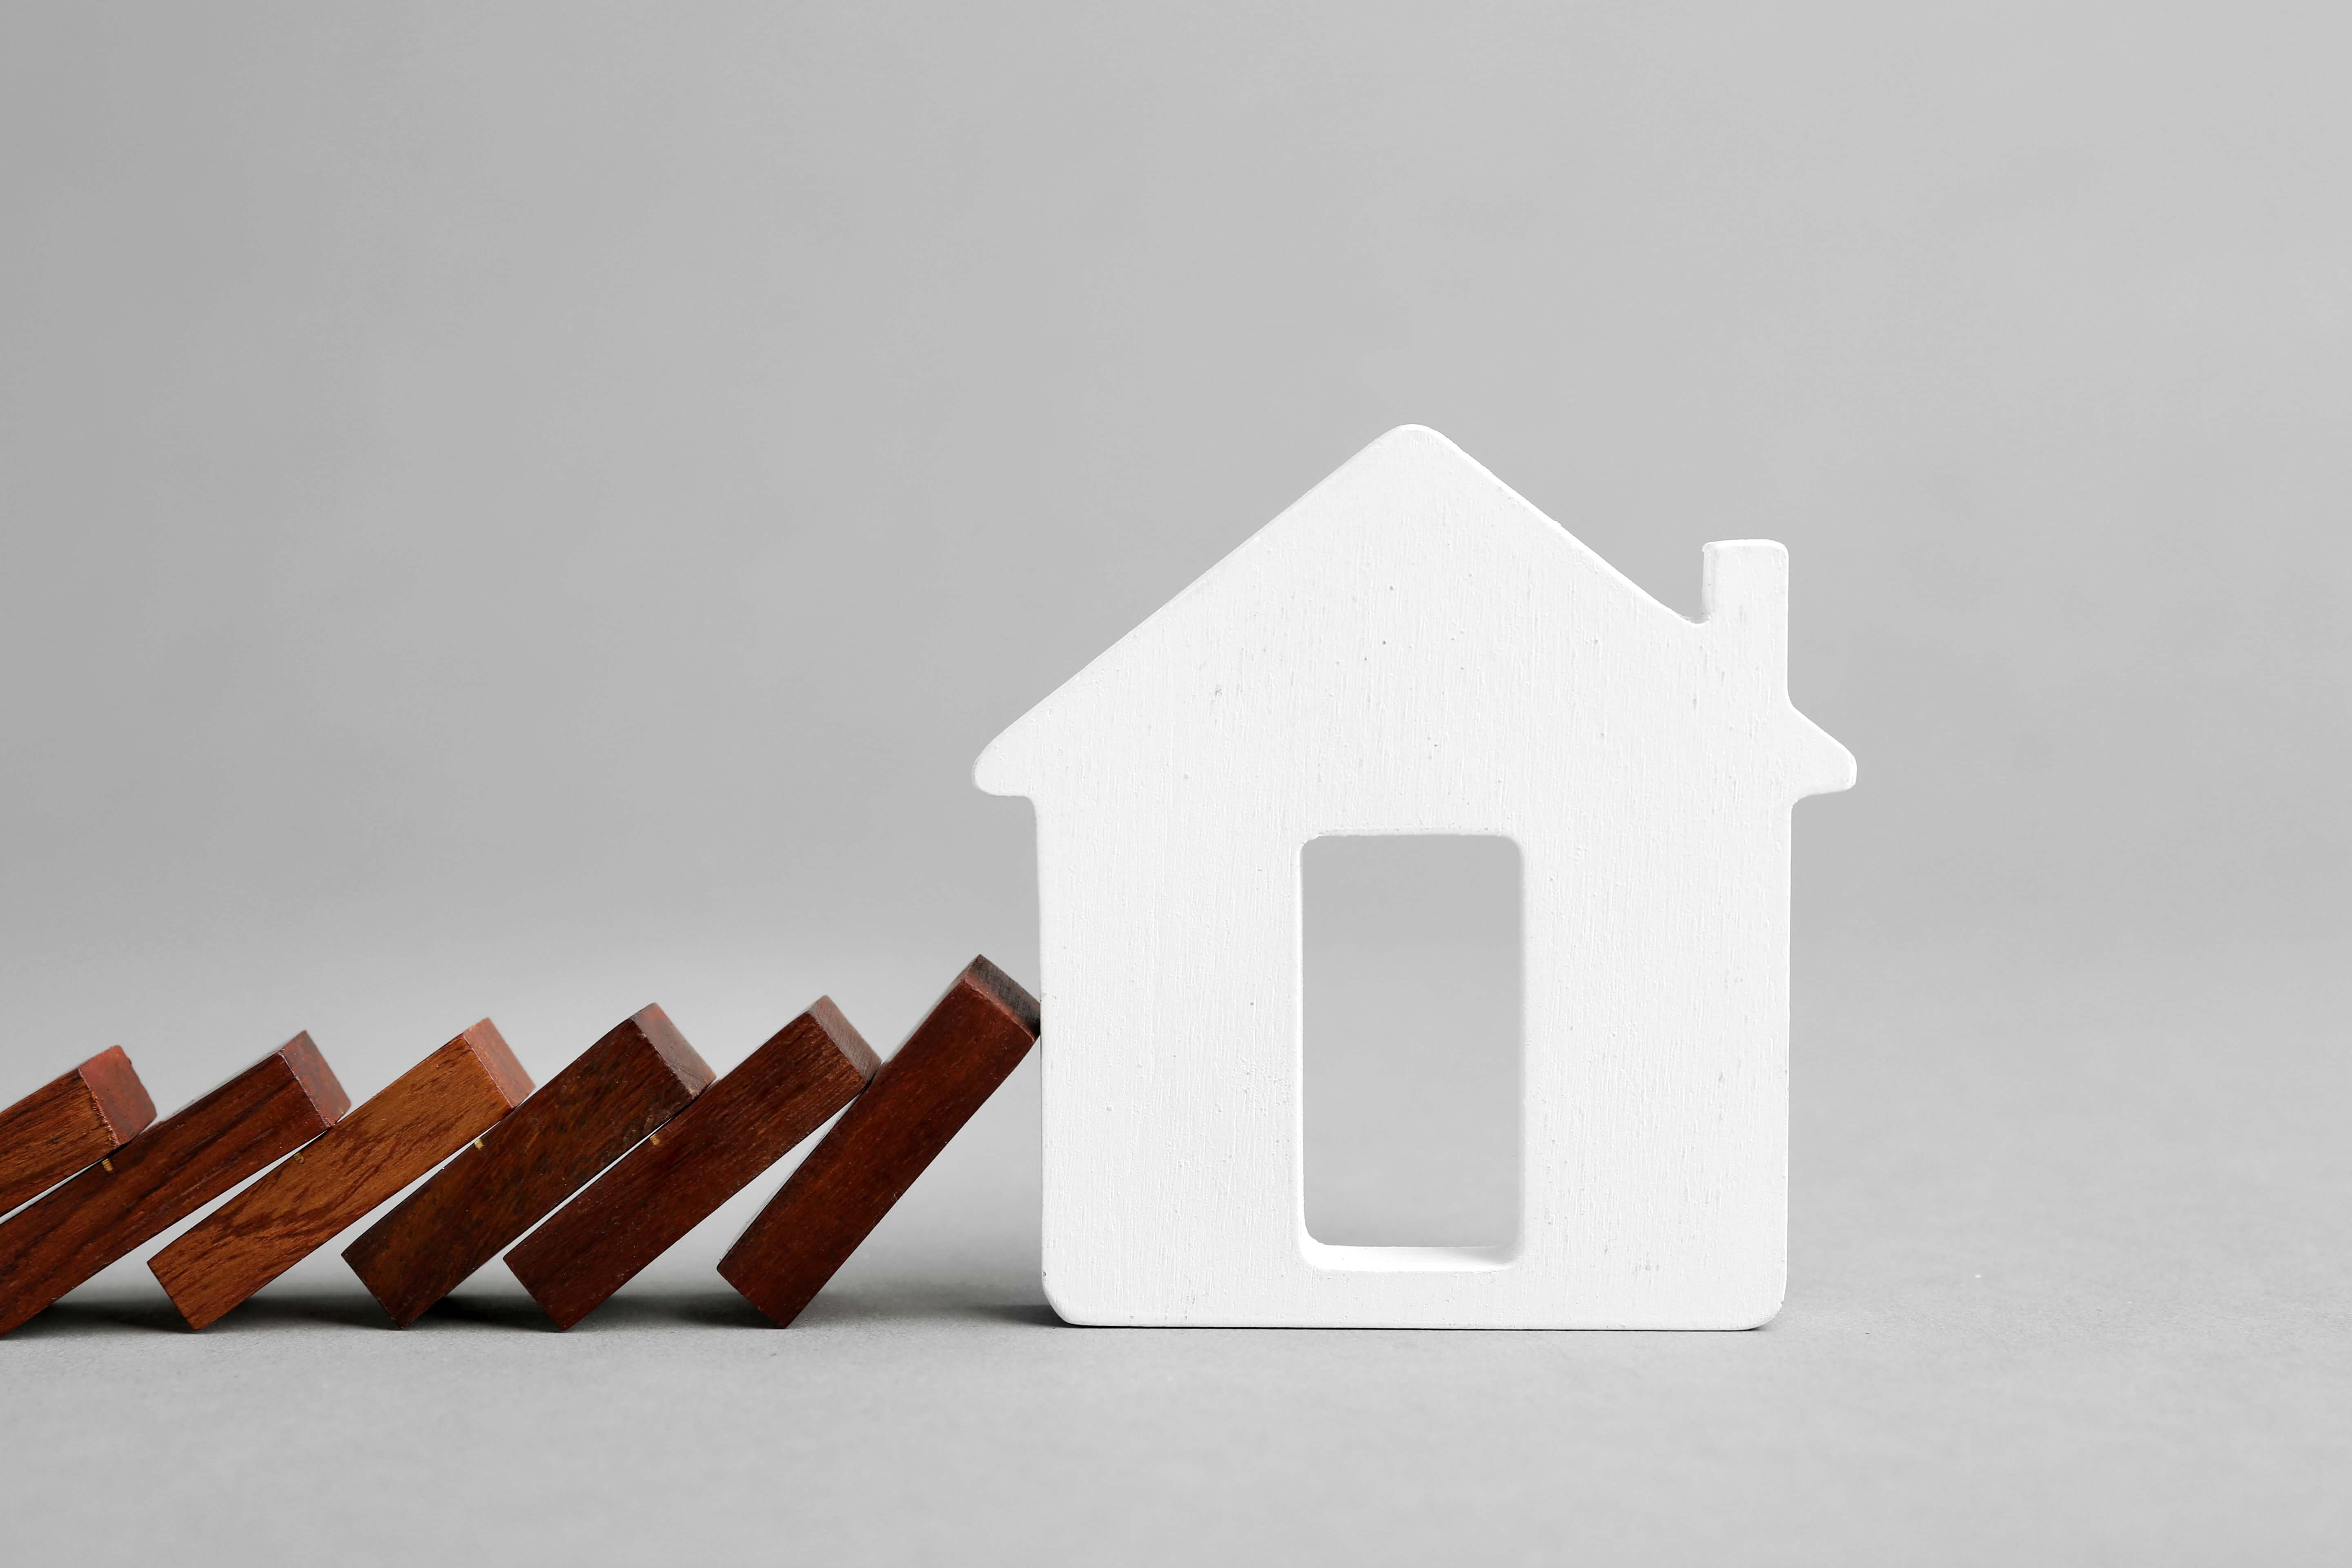 your house is part of the effects of foreclosure